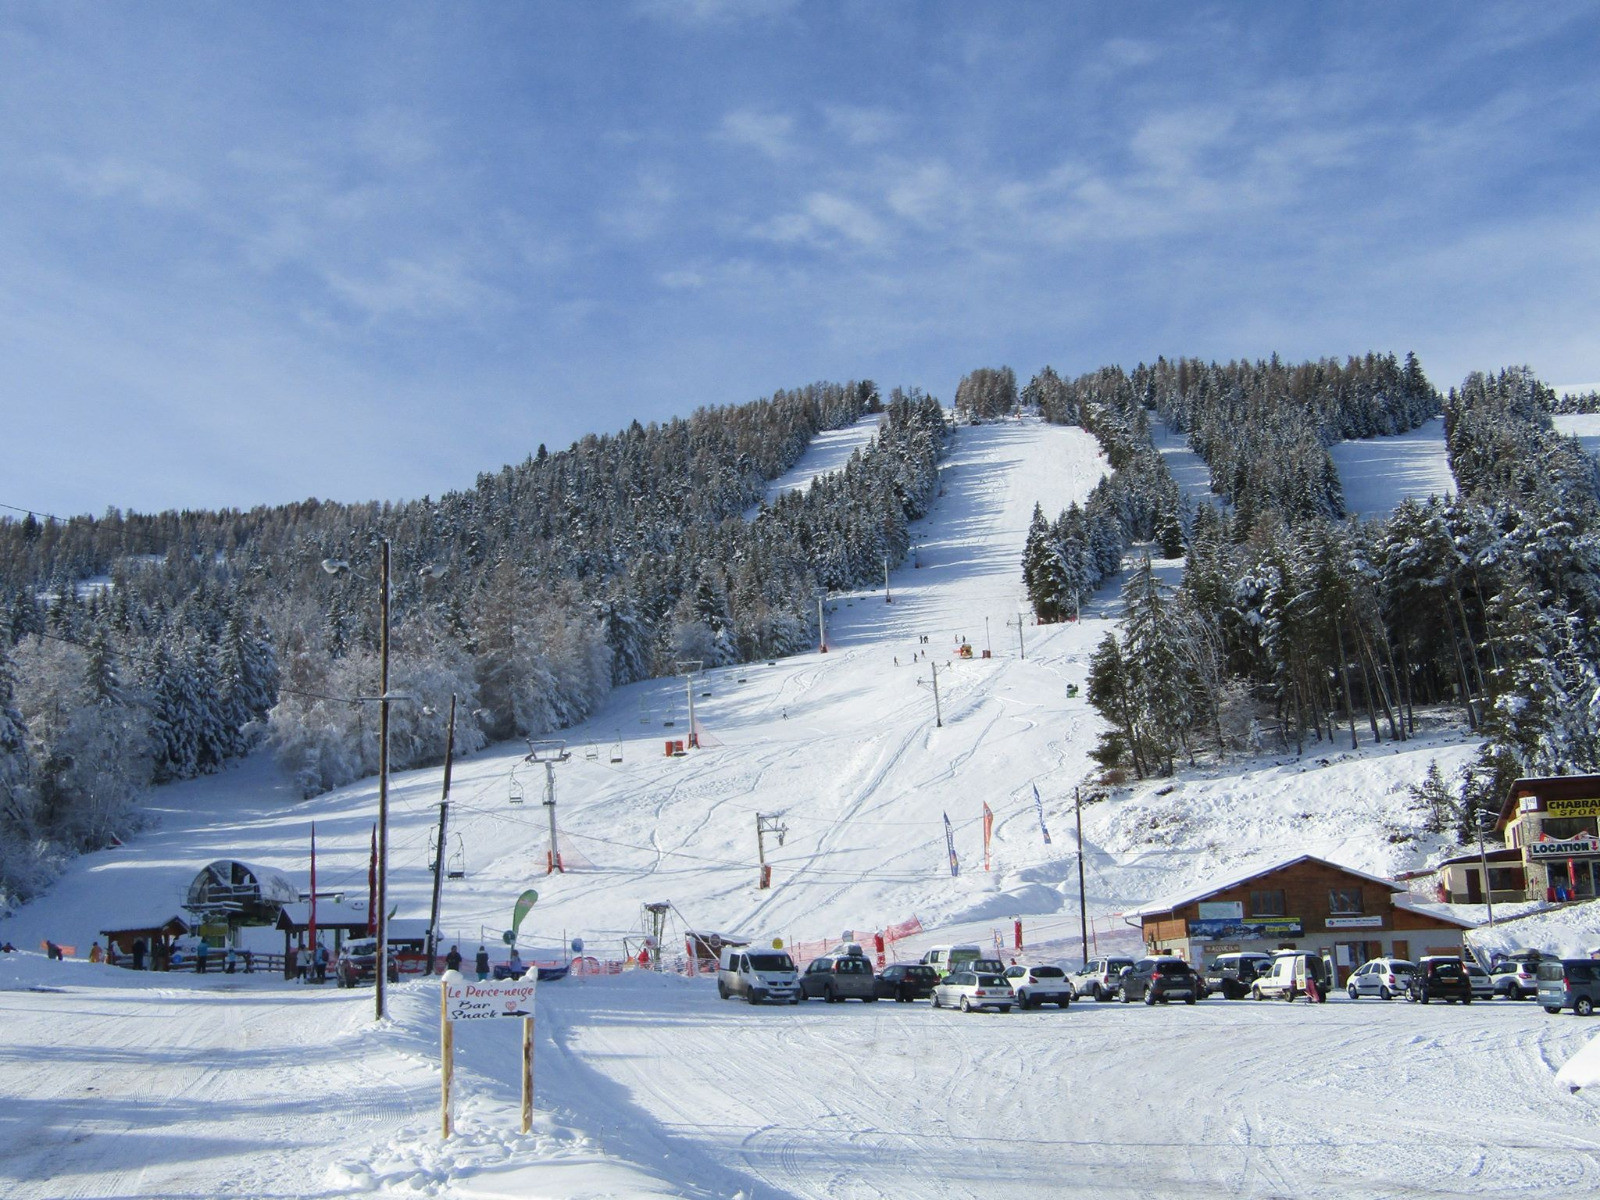 station de ski du Grand-Puyundefined